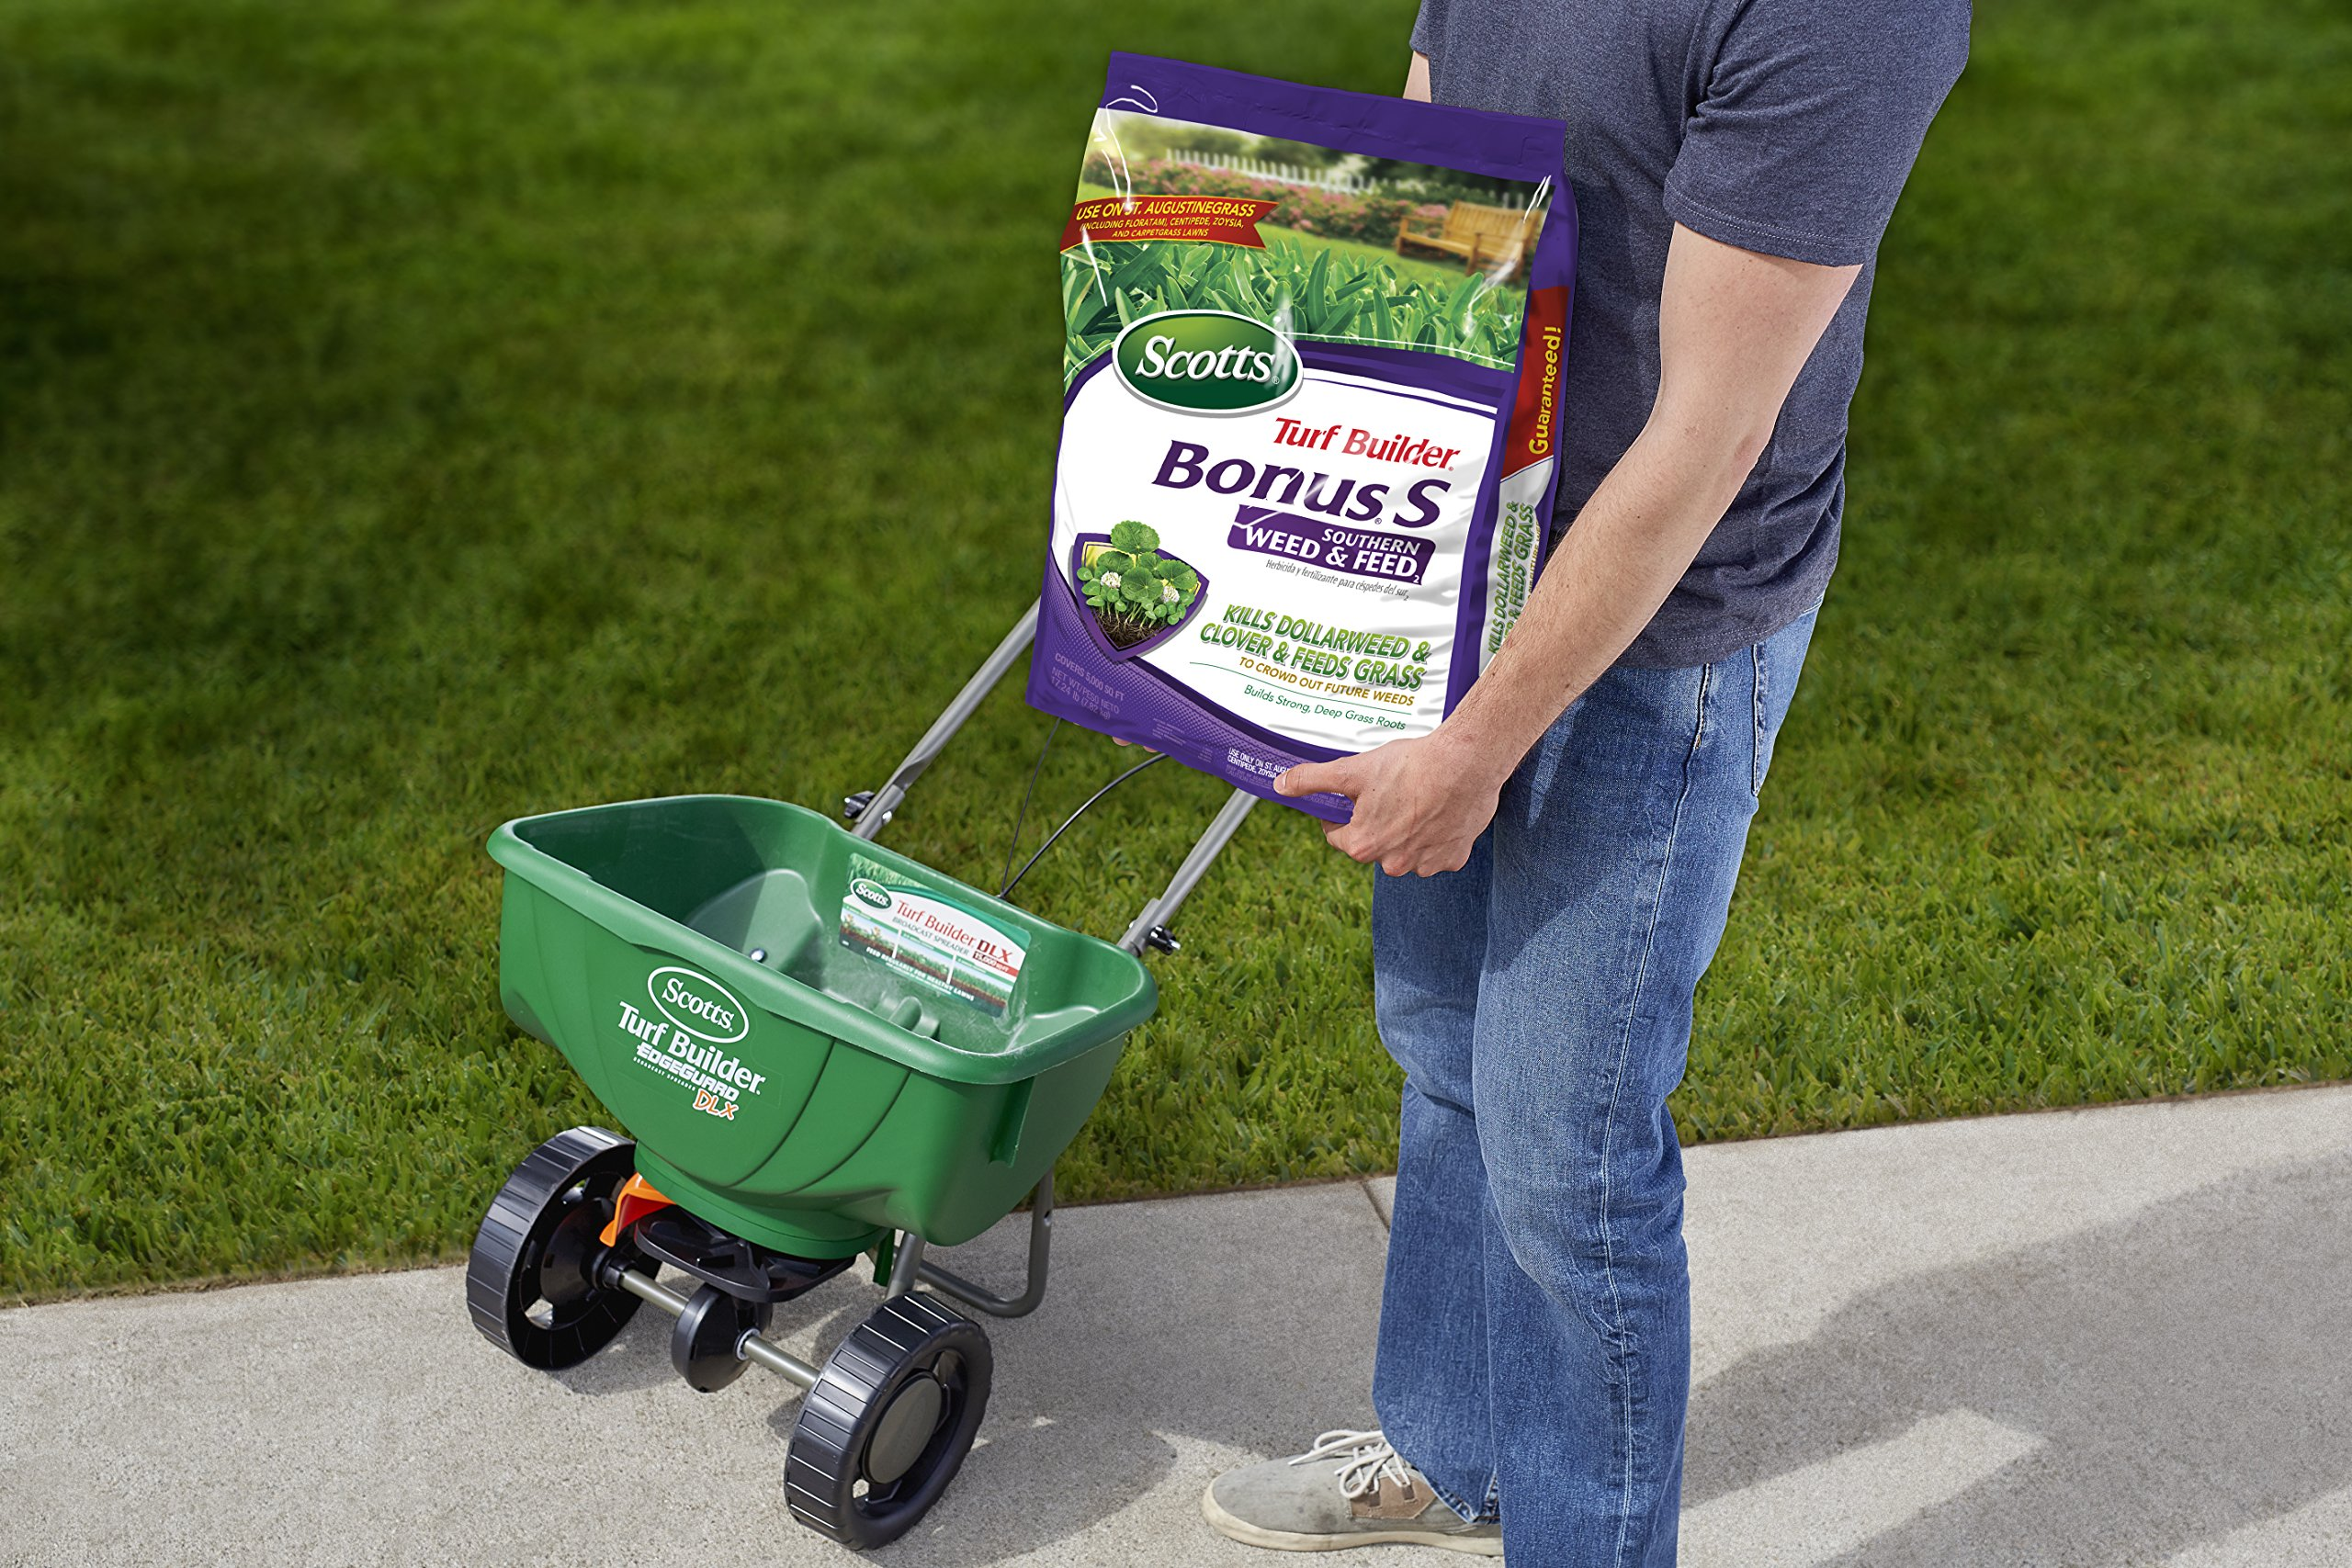 Scotts Turf Builder Bonus S Southern Weed and Feed, 5000 sq. ft. (Sold in select Southern states) by Scotts (Image #2)